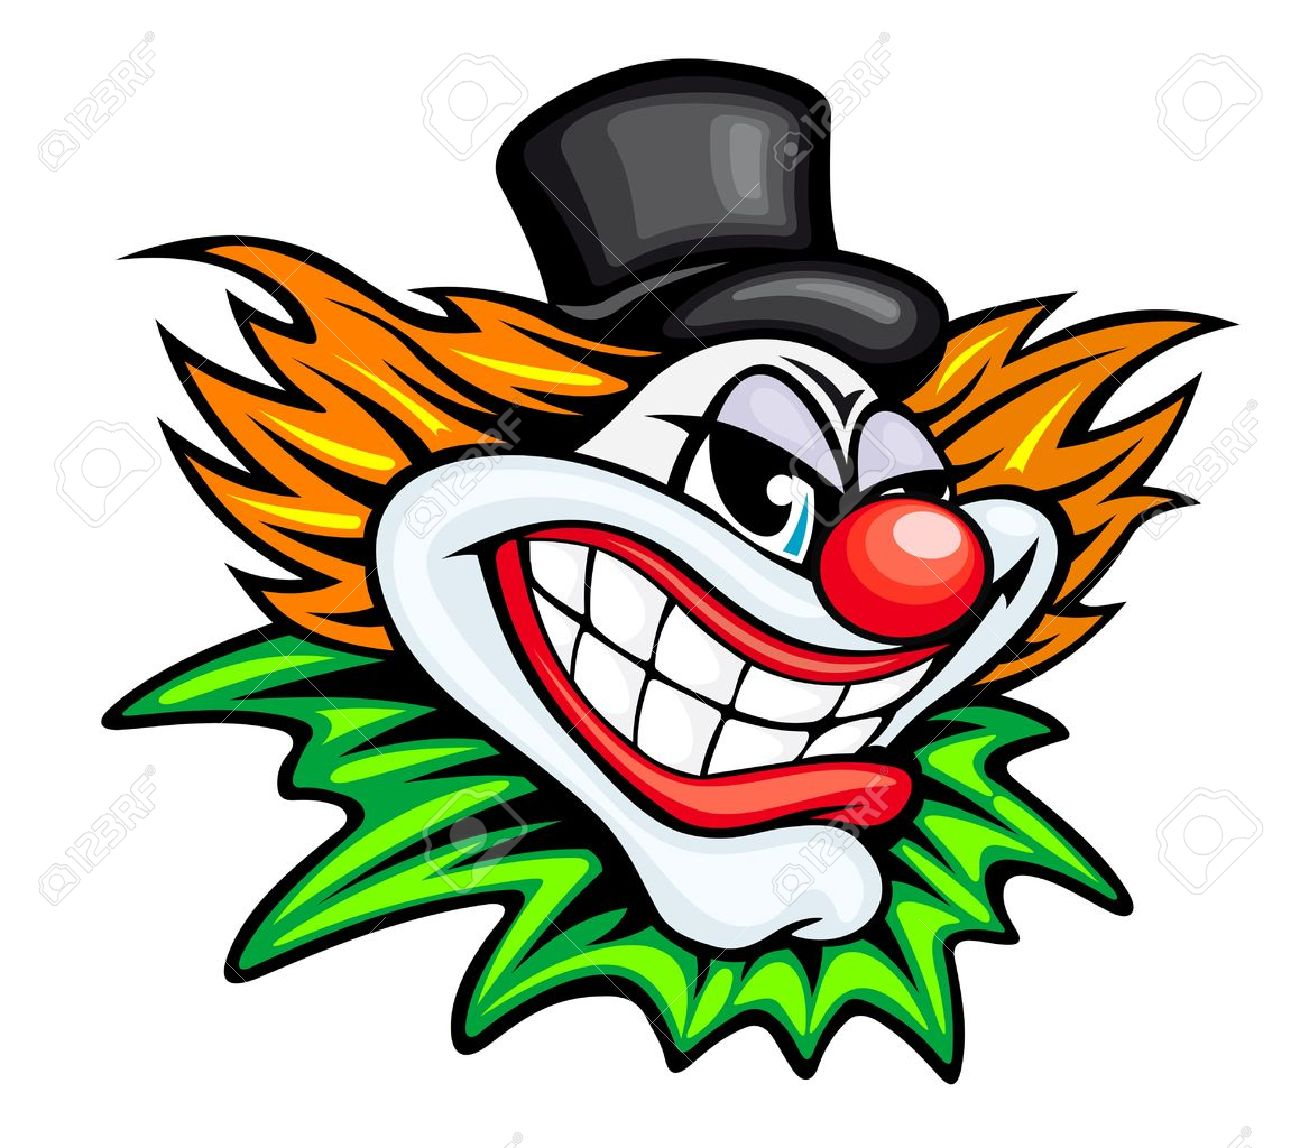 Angry circus clown or joker in cartoon style royalty free cliparts angry circus clown or joker in cartoon style stock vector 13194219 voltagebd Images